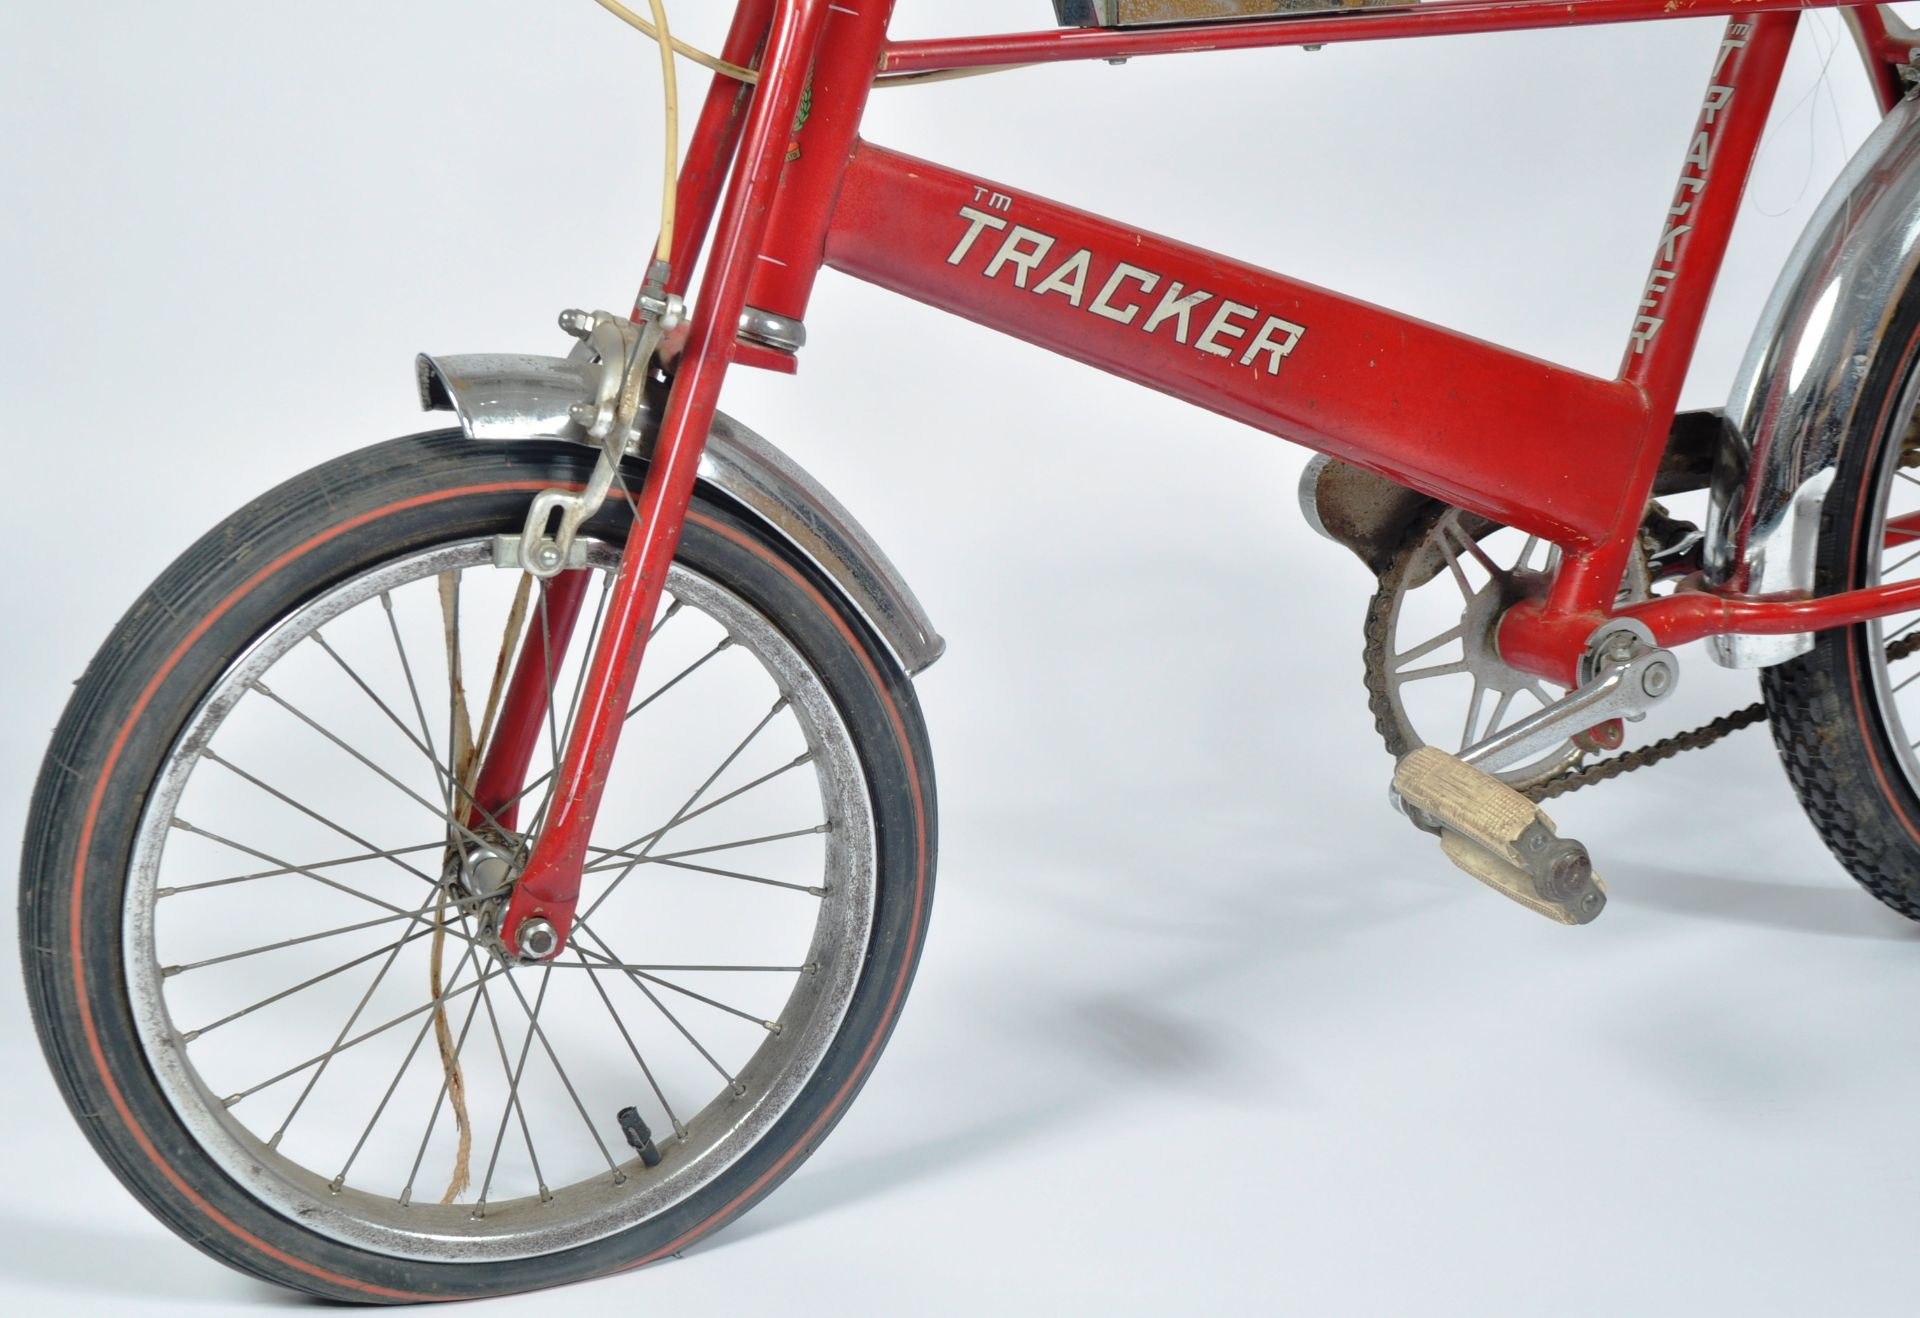 DIANA PRINCESS OF WALES - HER CHILDHOOD TRACKER BICYCLE - Image 5 of 11